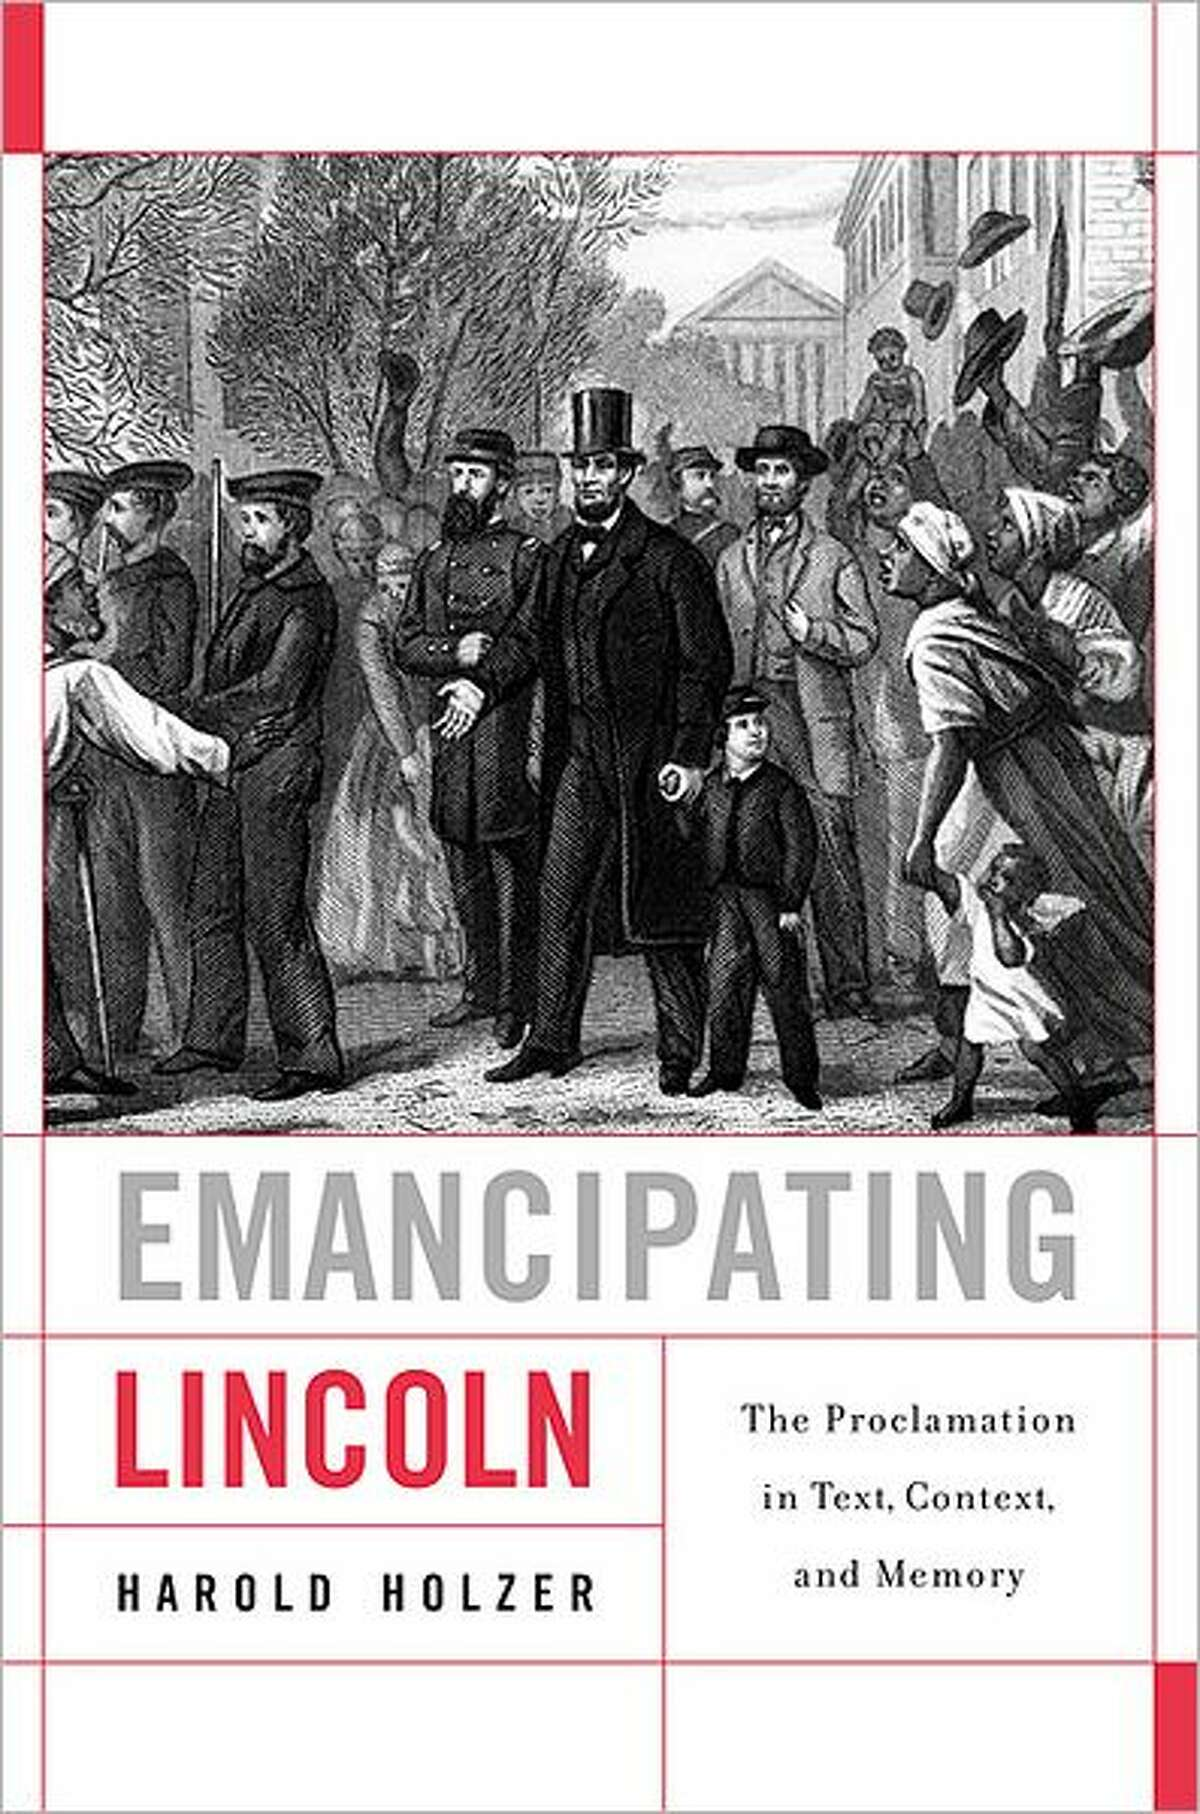 Harold Holzer's latest book, ?Emancipating Lincoln,? will be published Monday, Feb. 27, 2012 by Harvard University Press. It is based on three lectures Holzer delivered at Harvard.